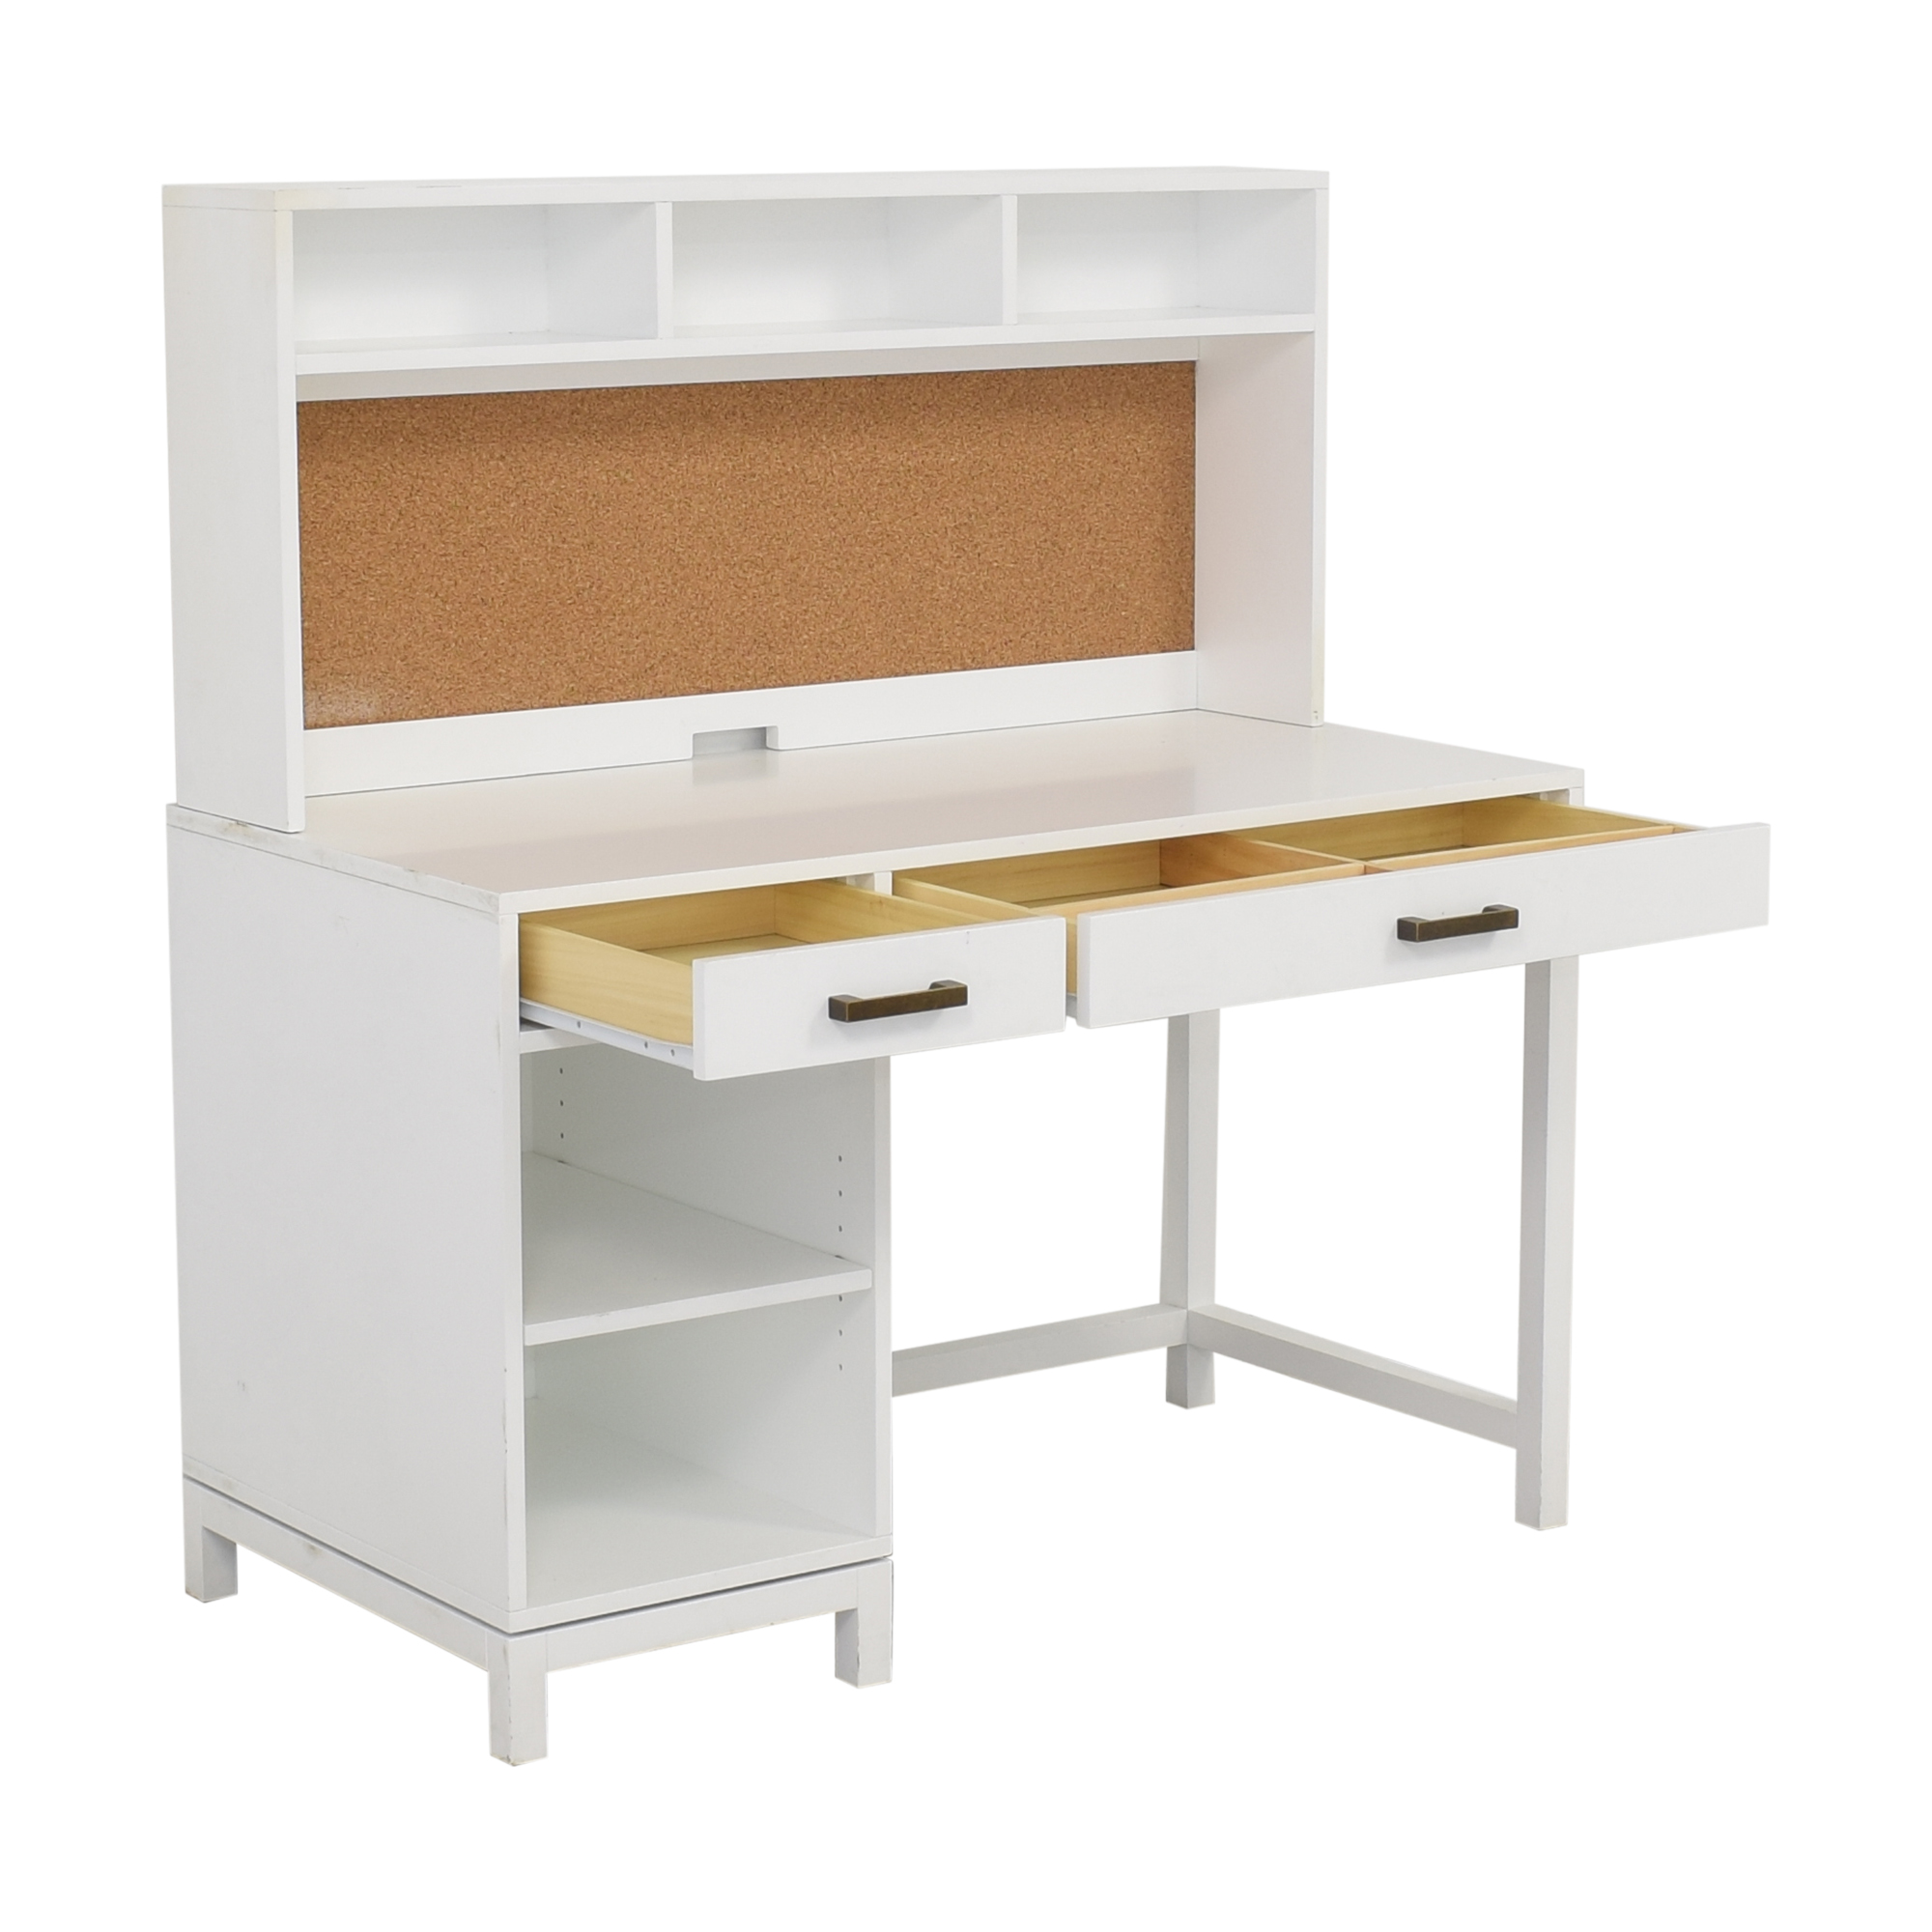 shop Land of Nod Land of Nod for Crate & Kids Parke Desk and Hutch online